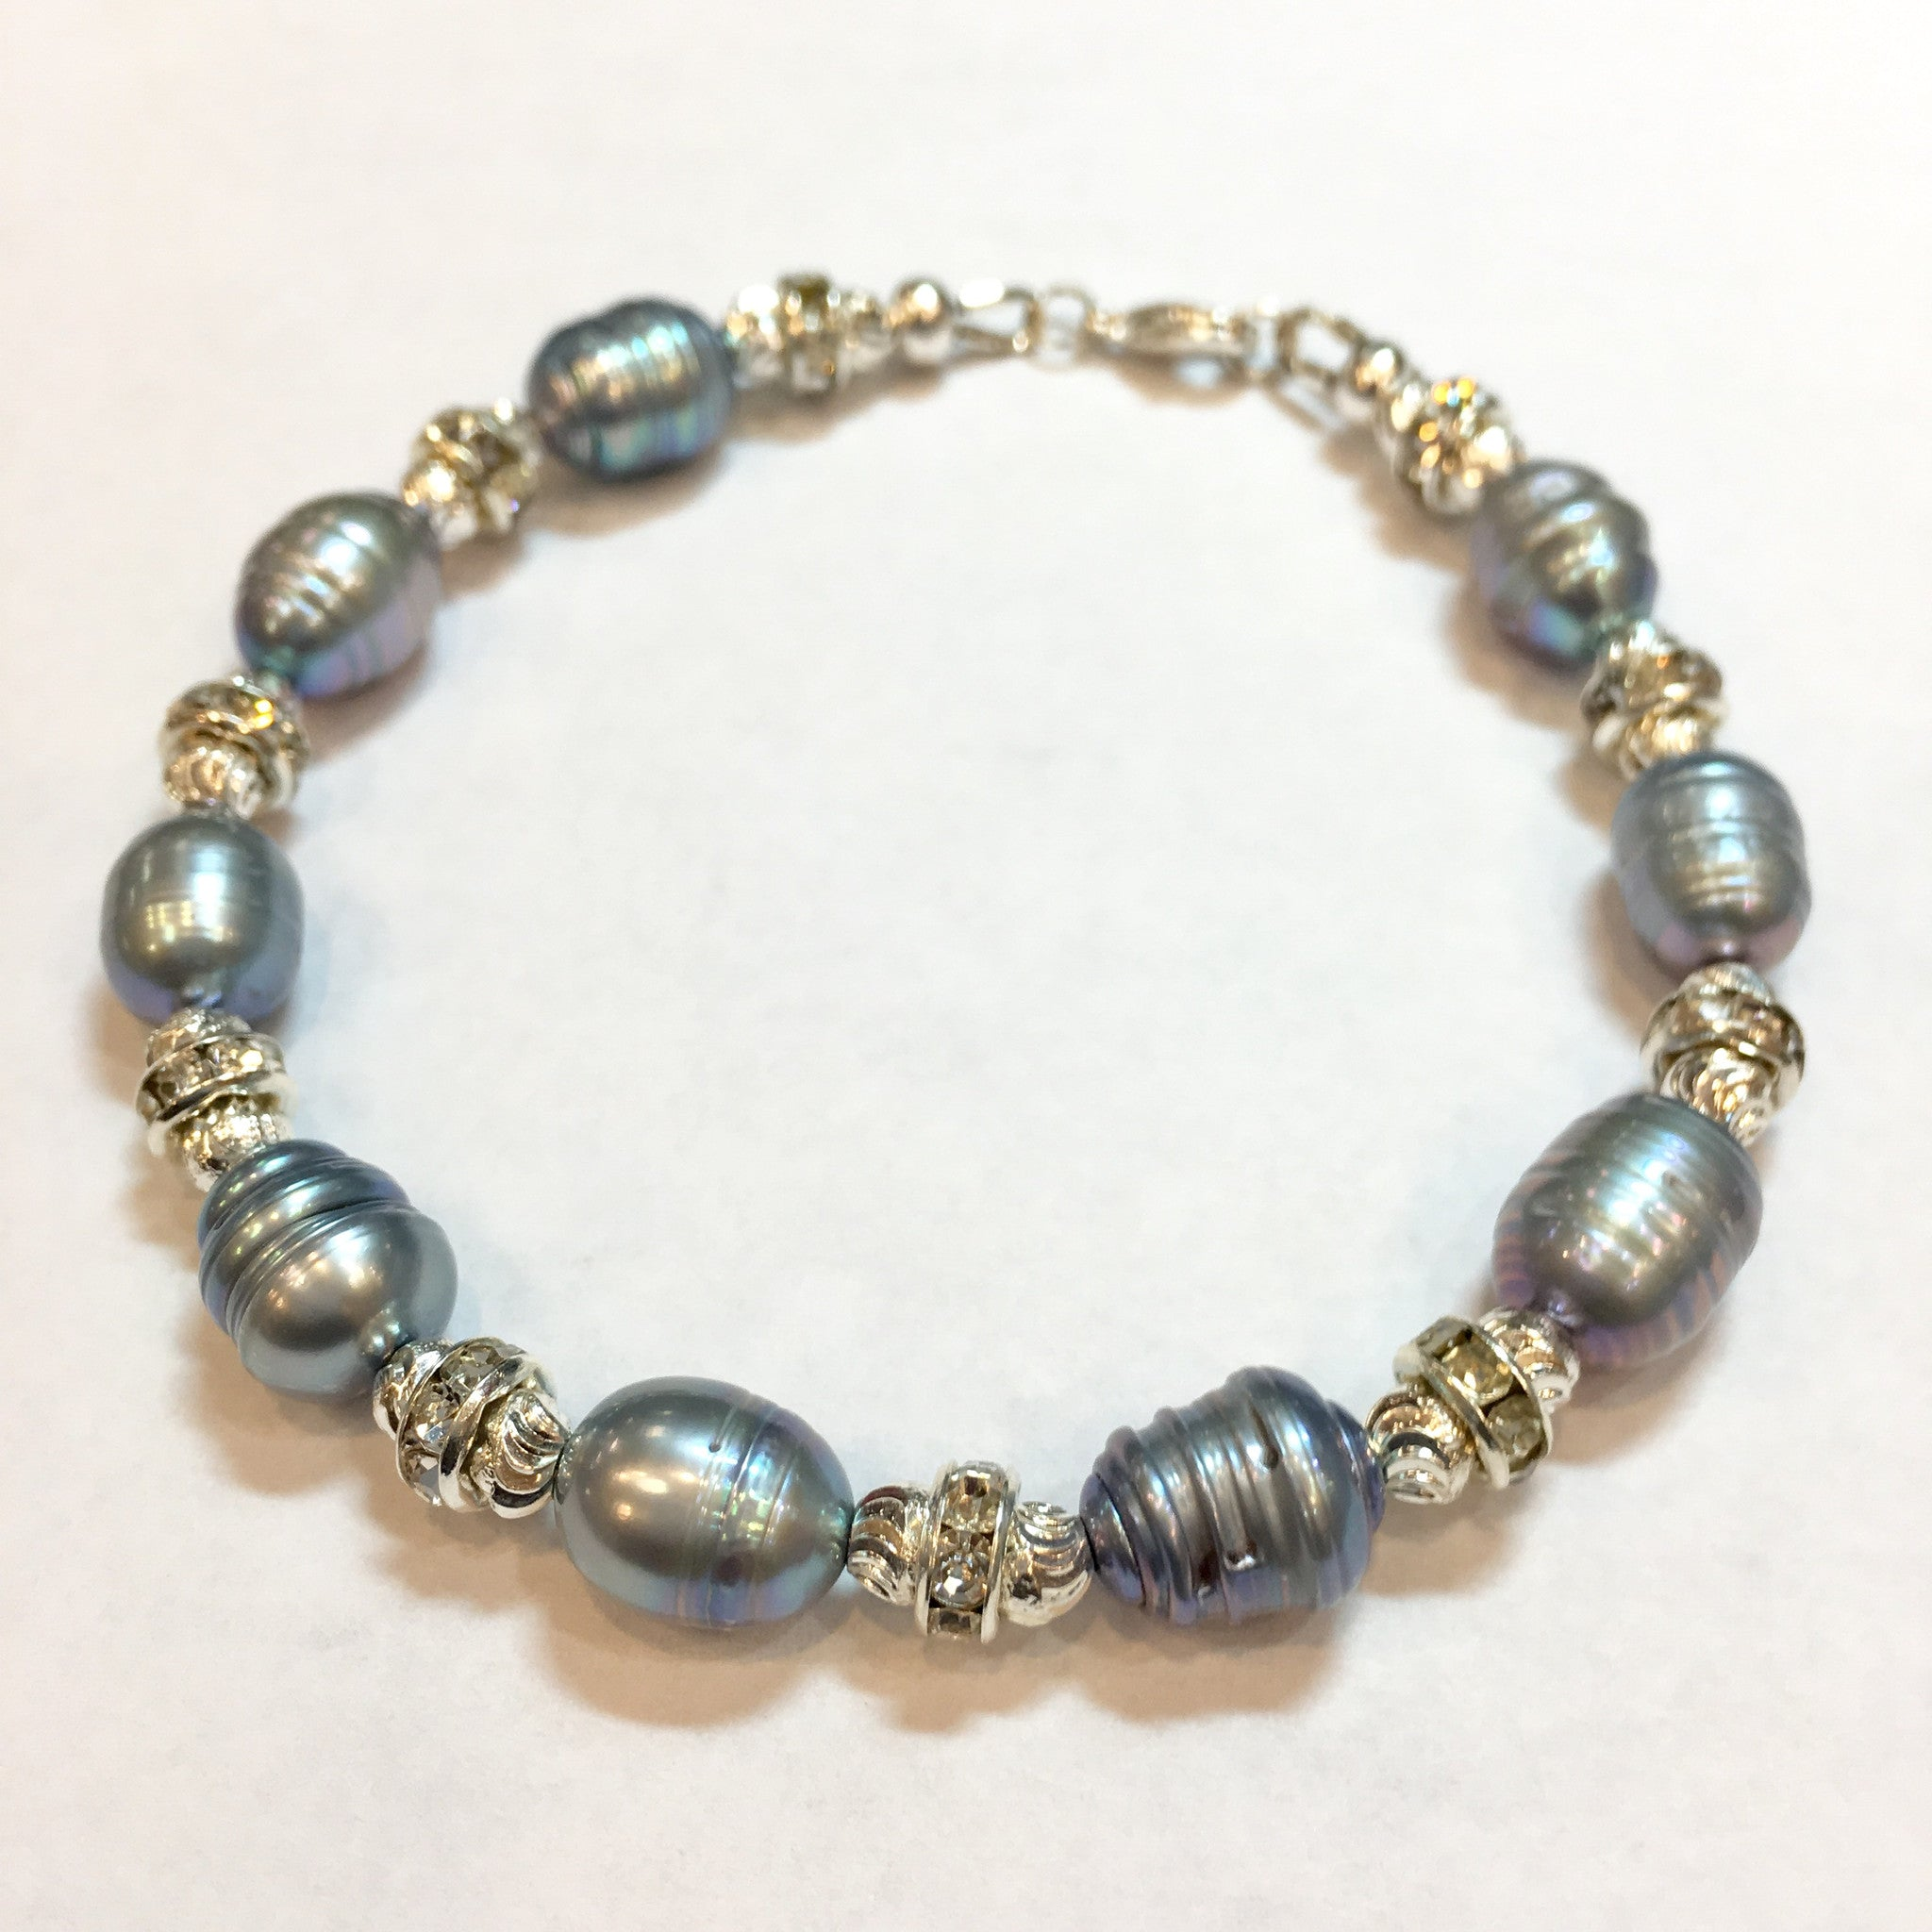 Fresh Water Pearl and Swarovski Bracelet - Real Chic Boutique  - 2